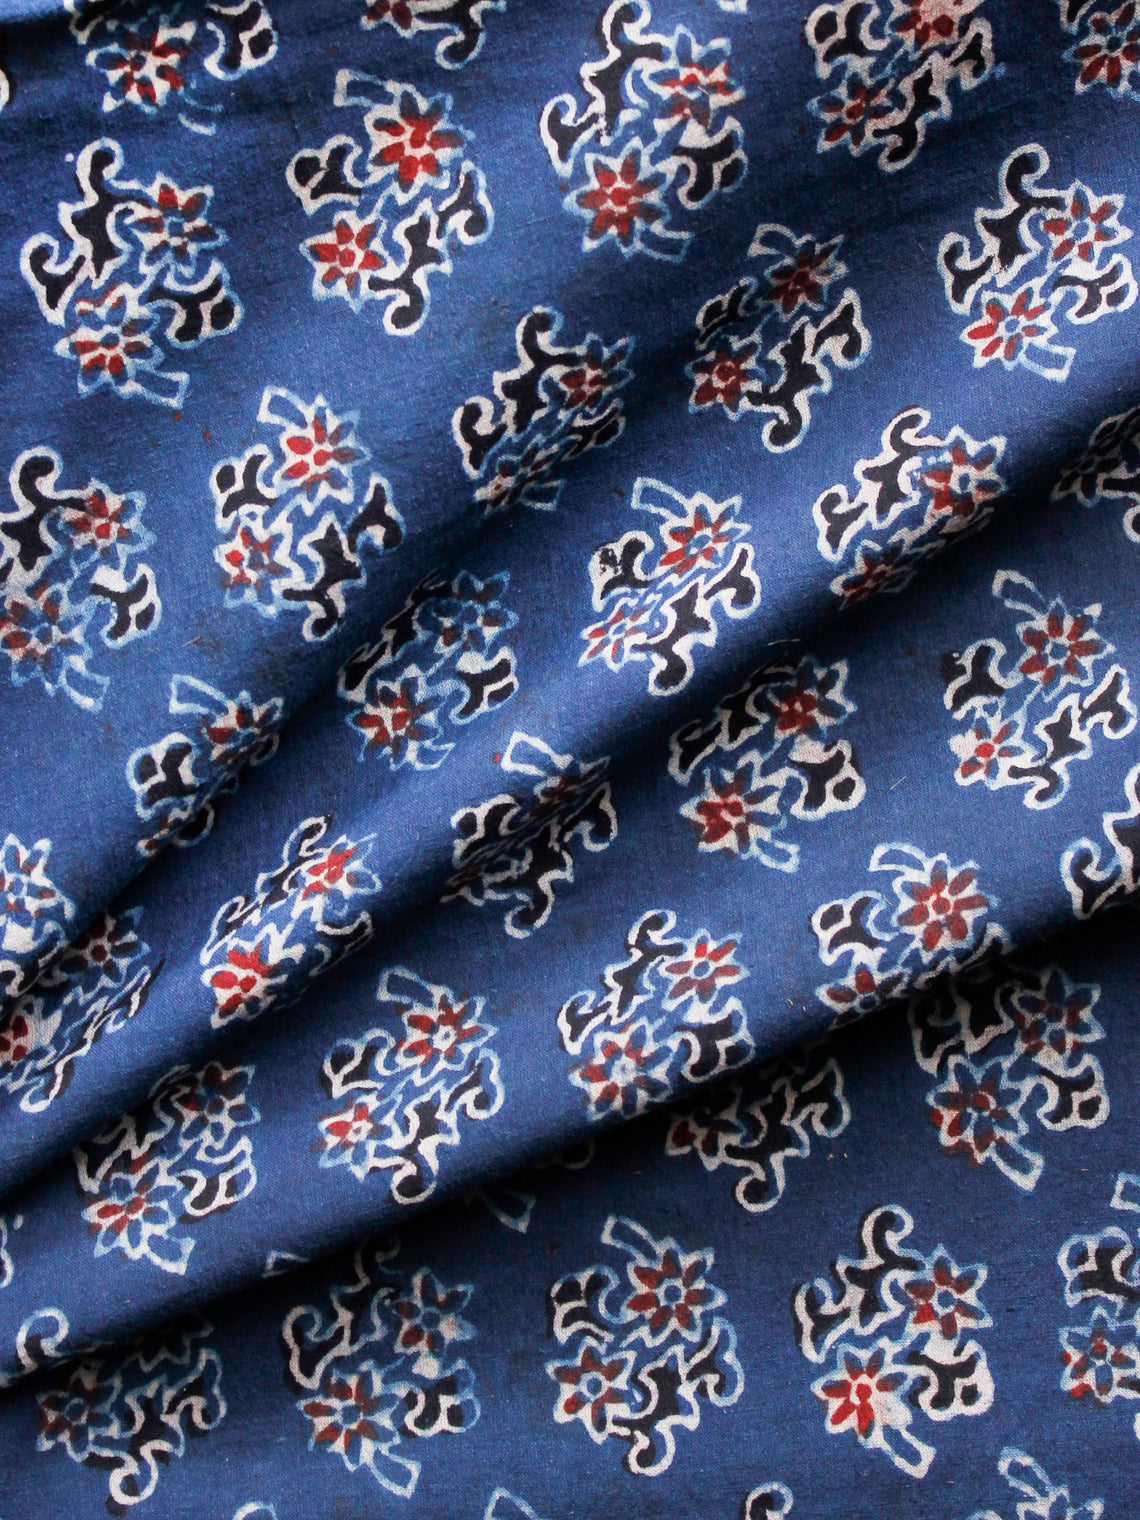 Indigo Black Rust Ivory Ajrakh Hand Block Printed Cotton Fabric Per Meter - F003F1595